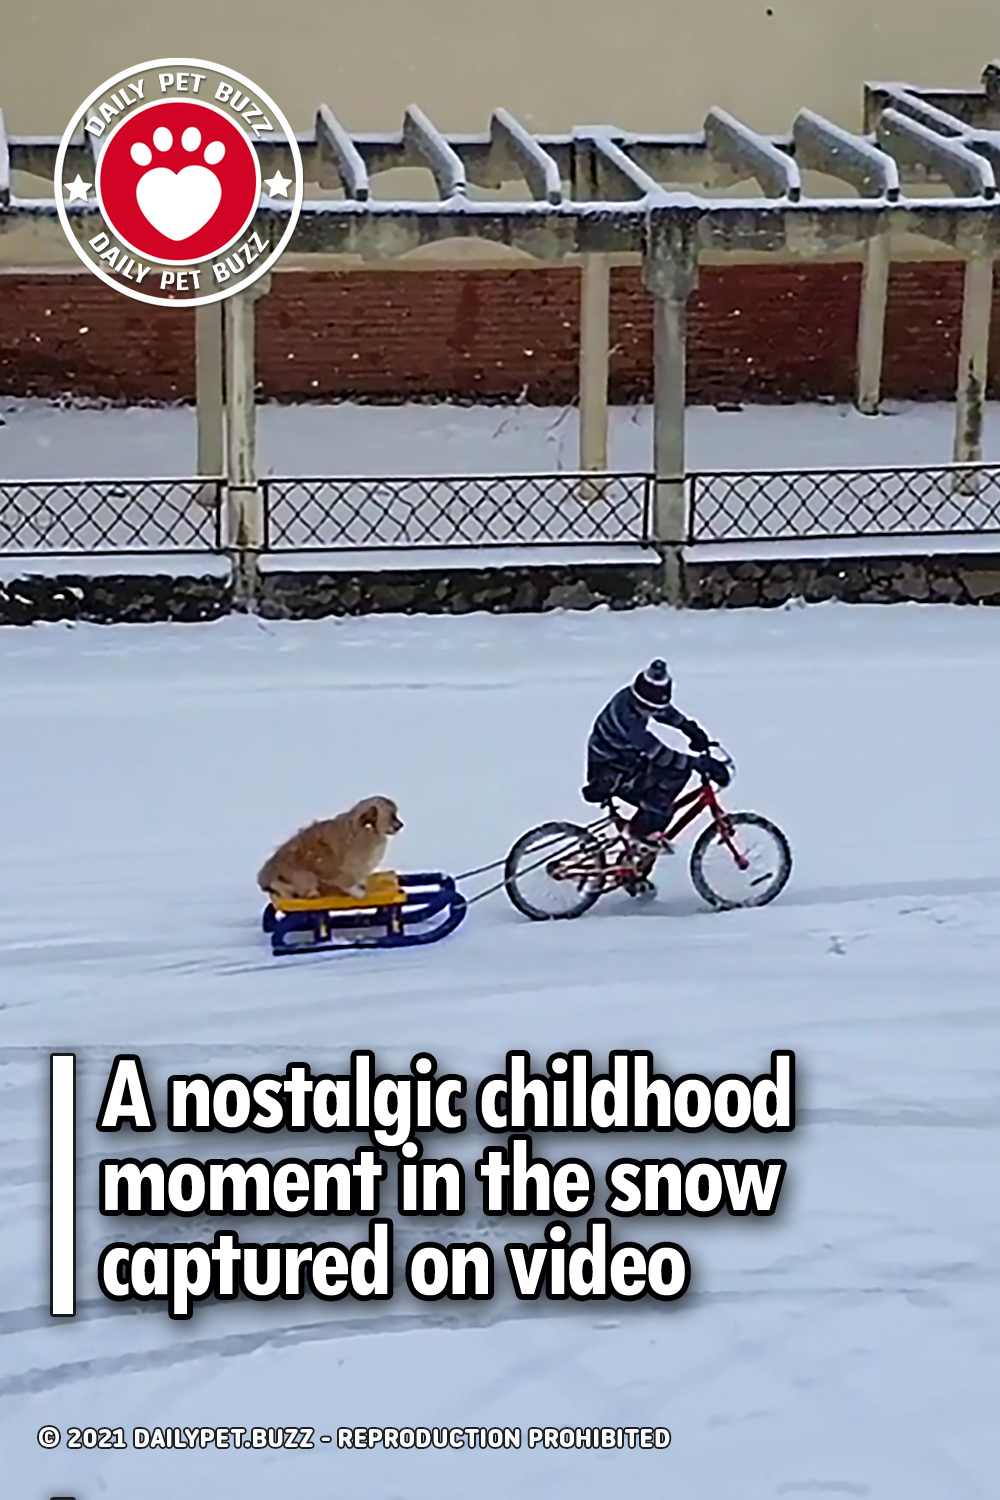 A nostalgic childhood moment in the snow captured on video